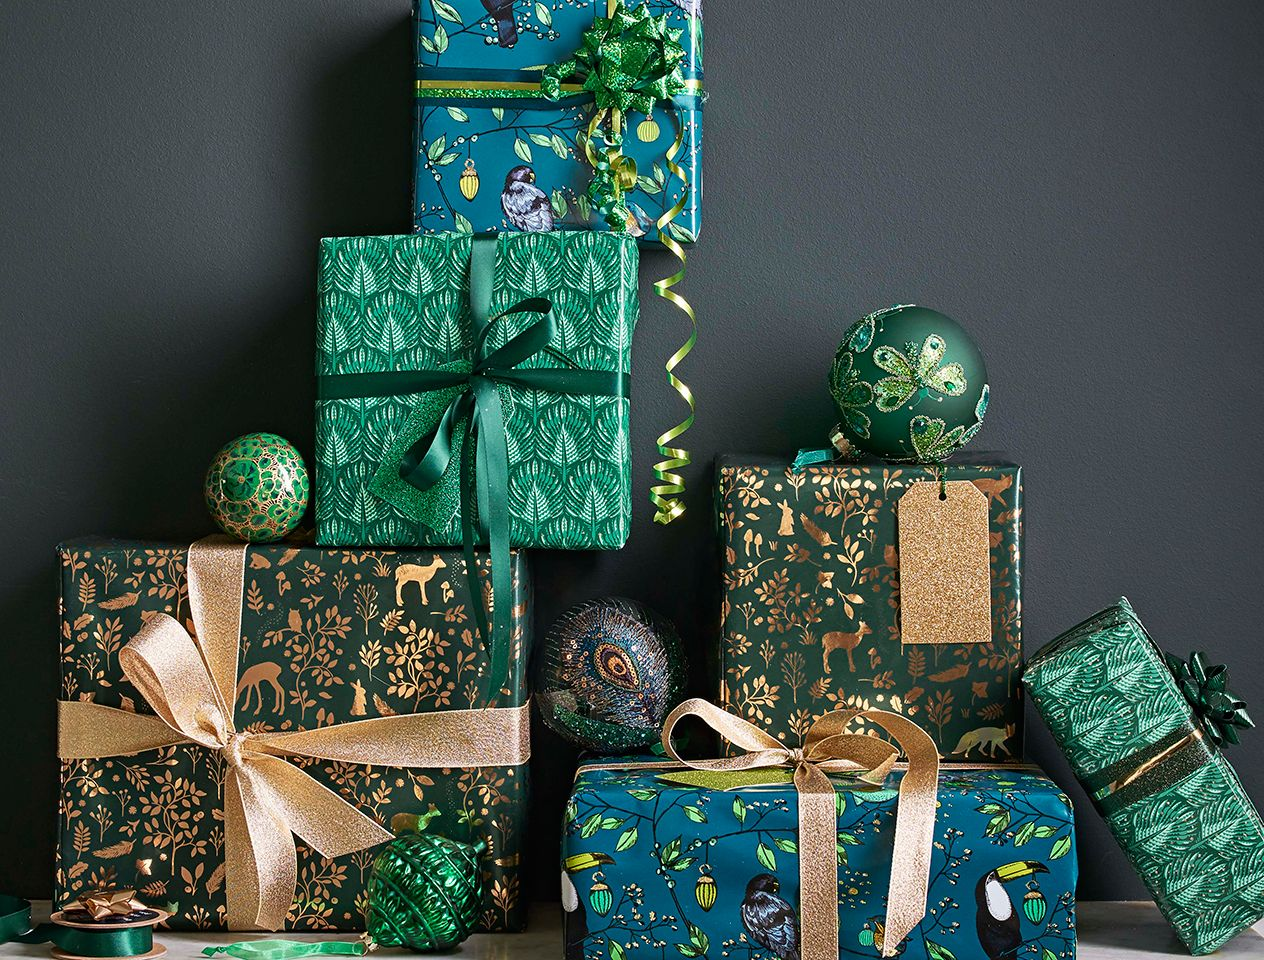 Green gift-wrapped Christmas presents